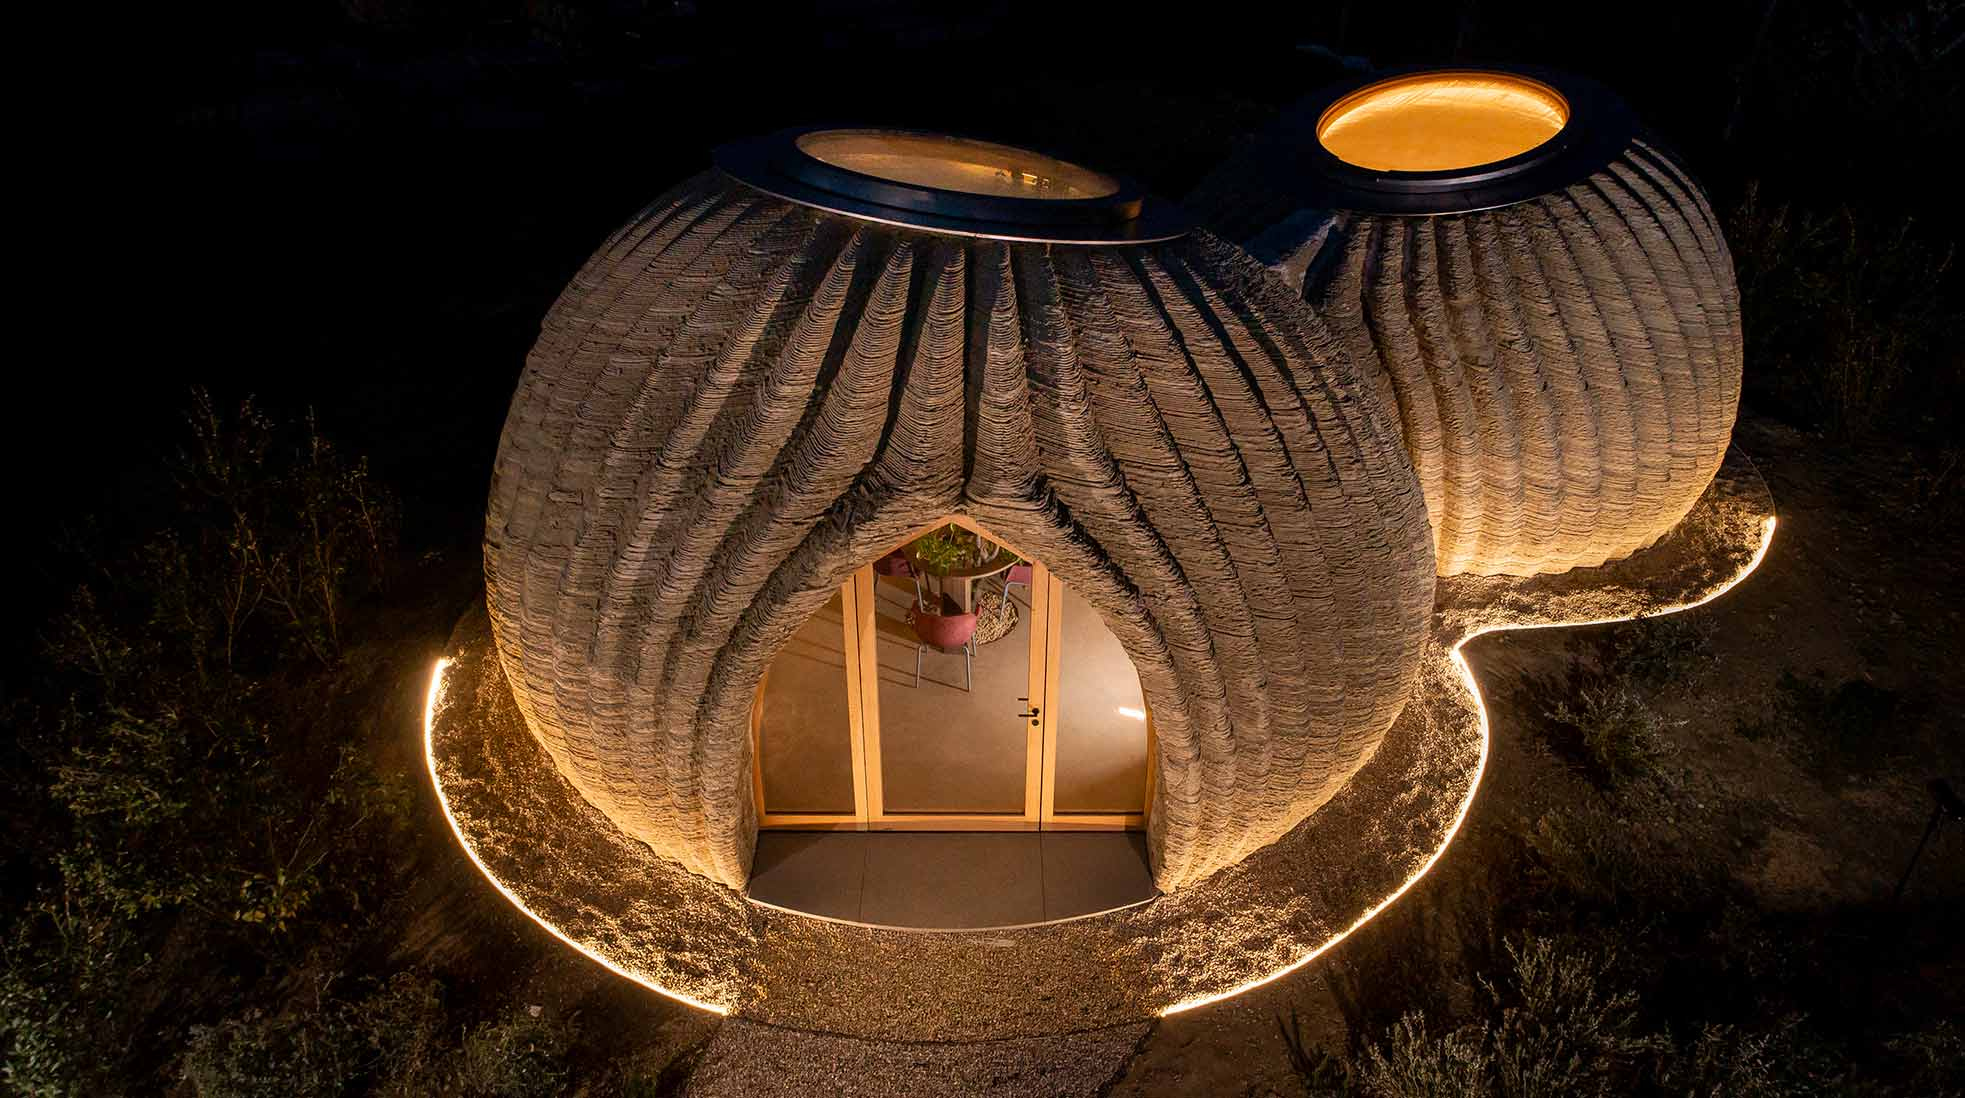 3D printed house of clay at night